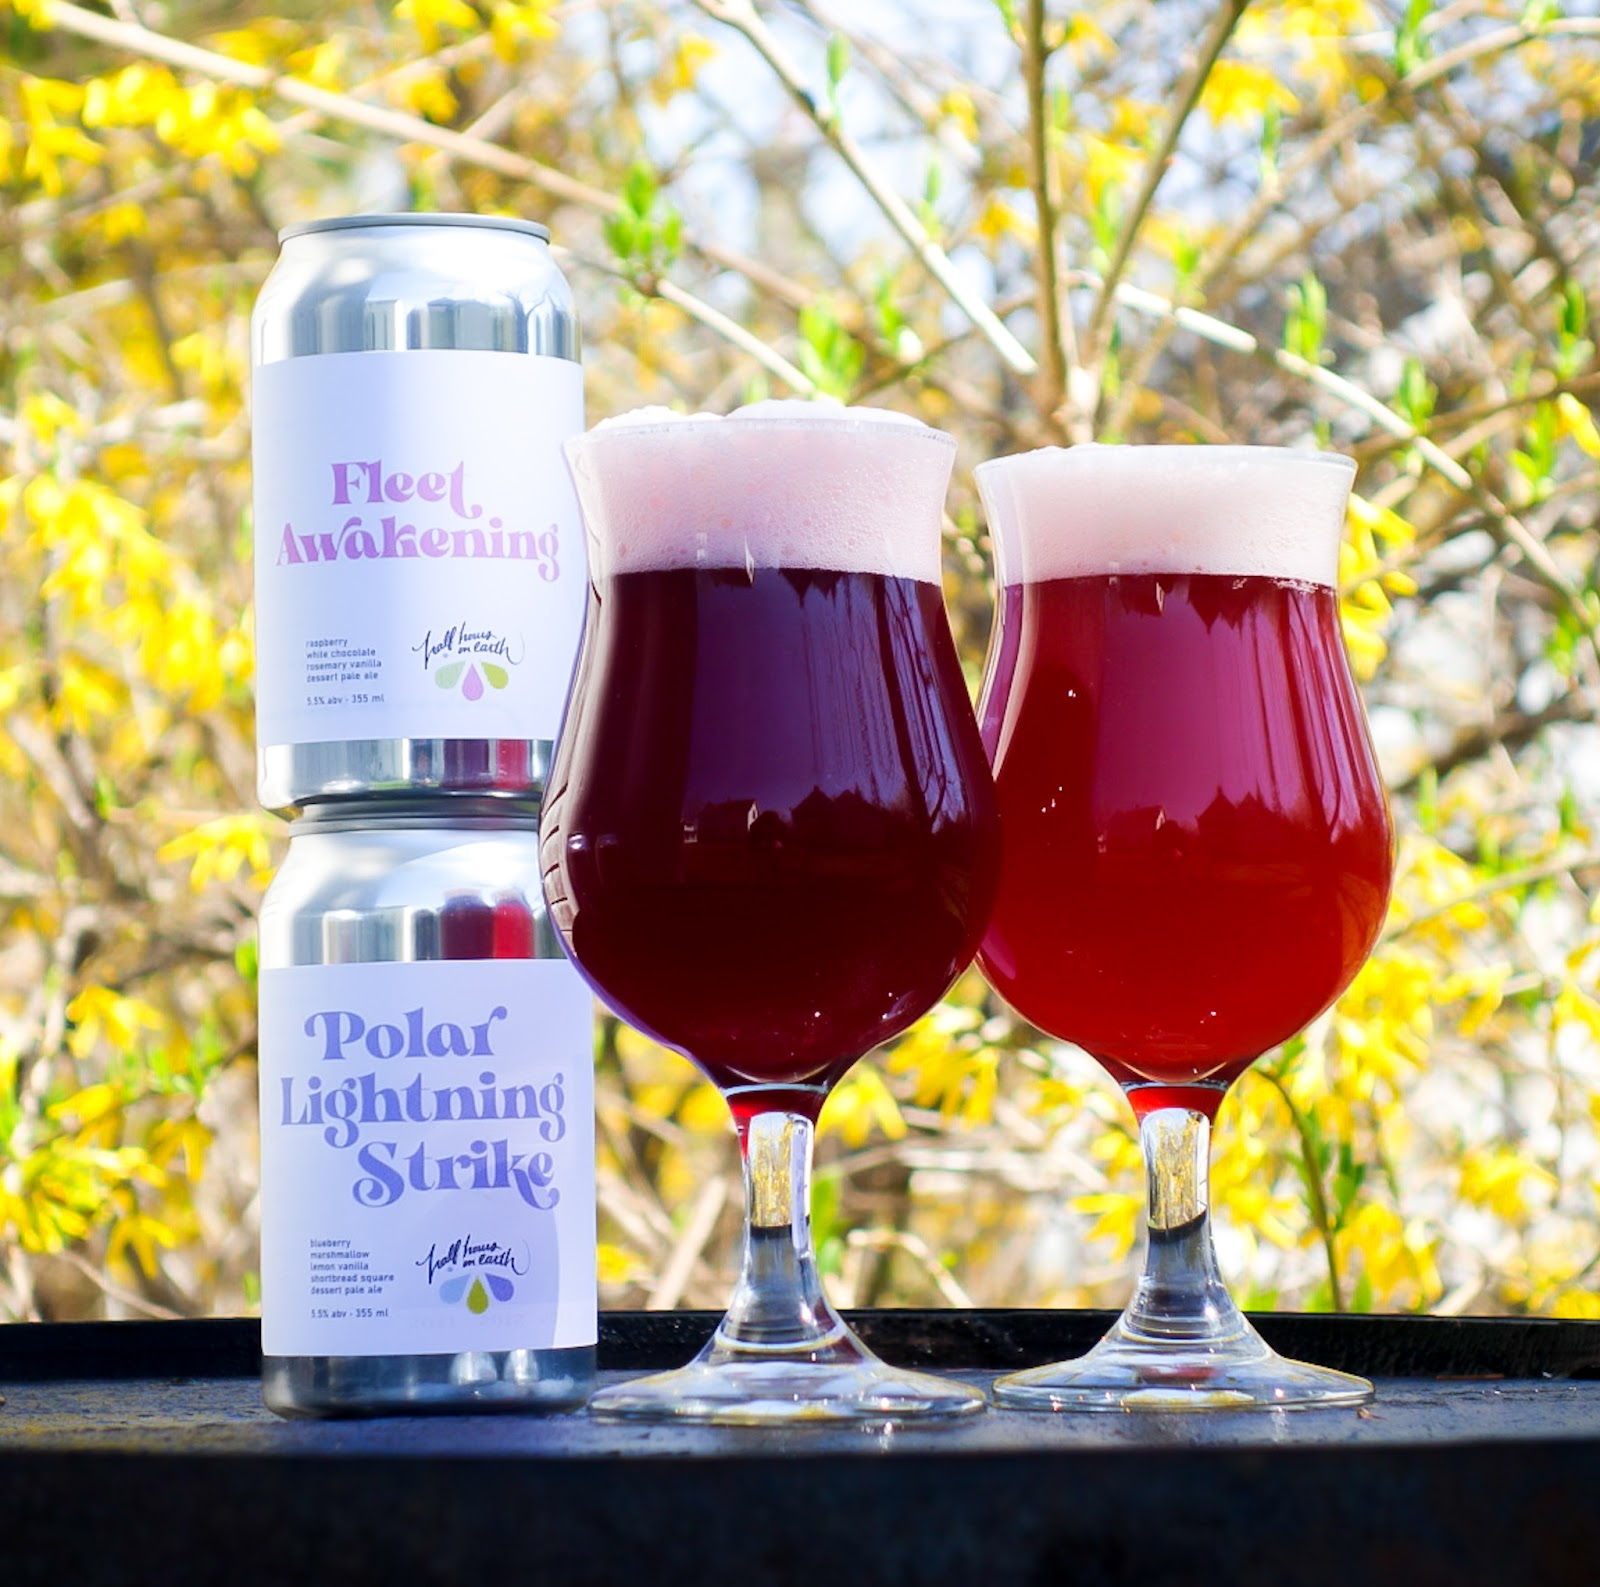 A photo of the cans for Fleet Awakening and Polar Lightning Strike beside two tulip glasses with the beers in them.  One is a dark plum colour and the other is a bright raspberry.